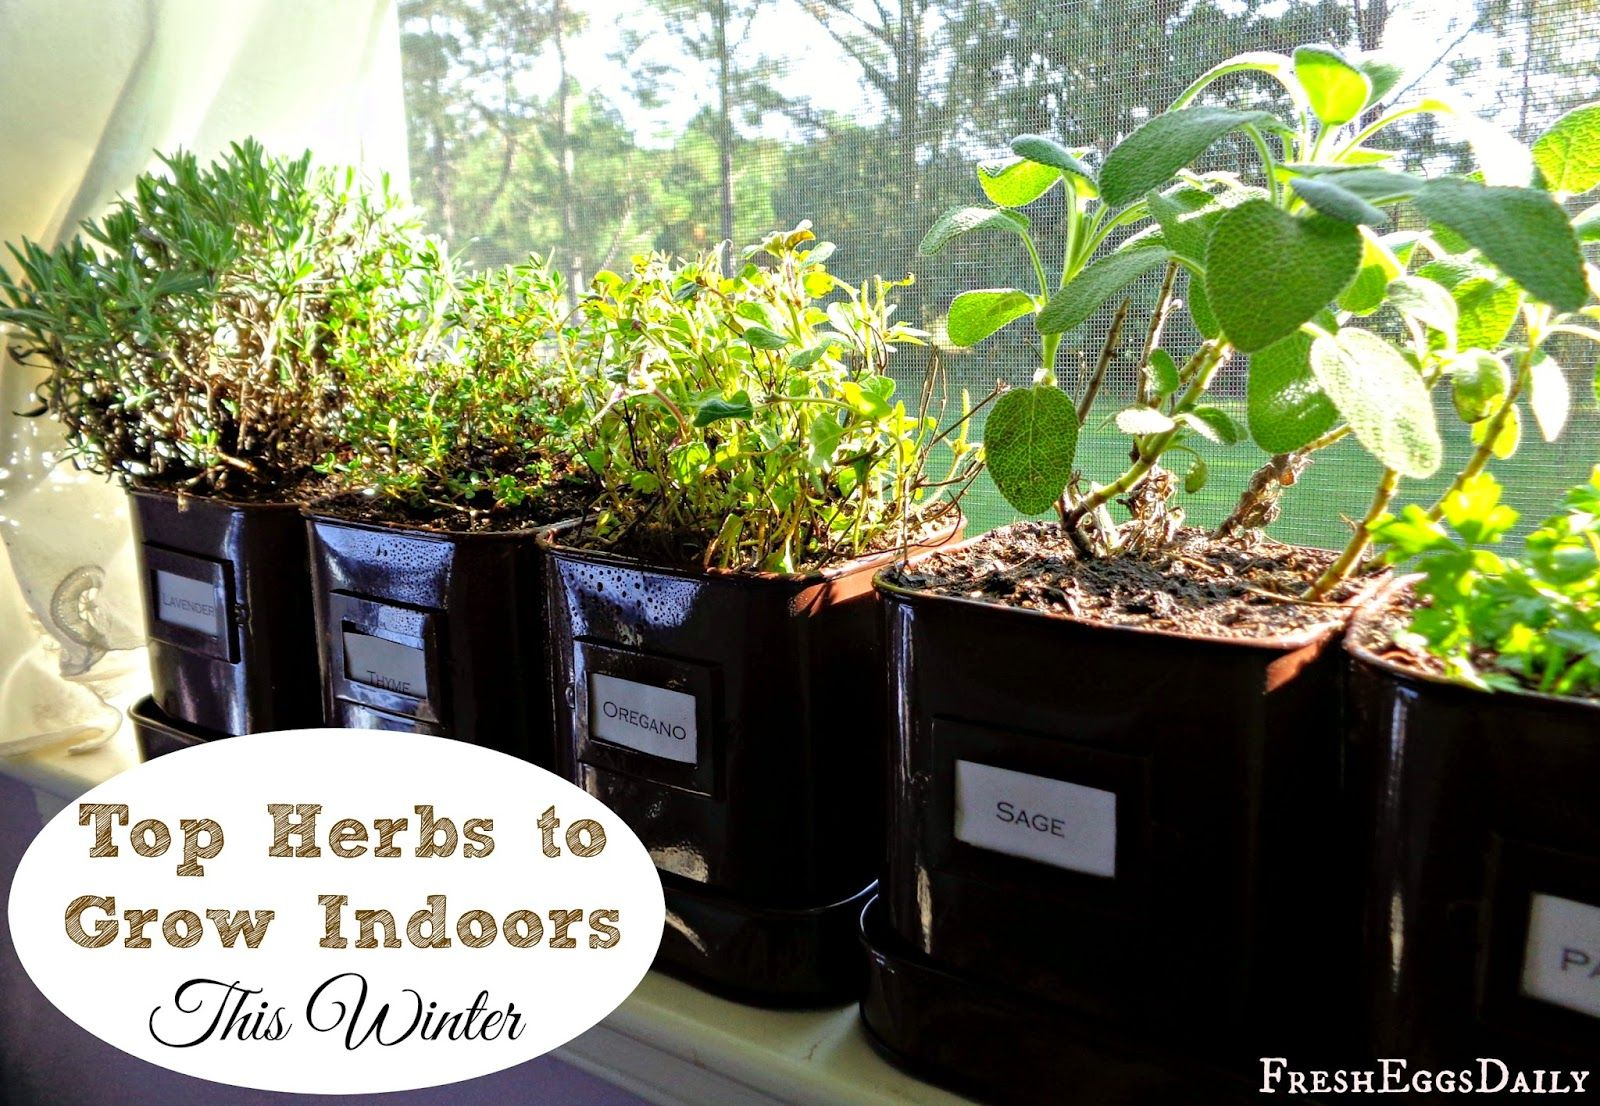 Fresh eggs daily grow herbs indoors this winter my top